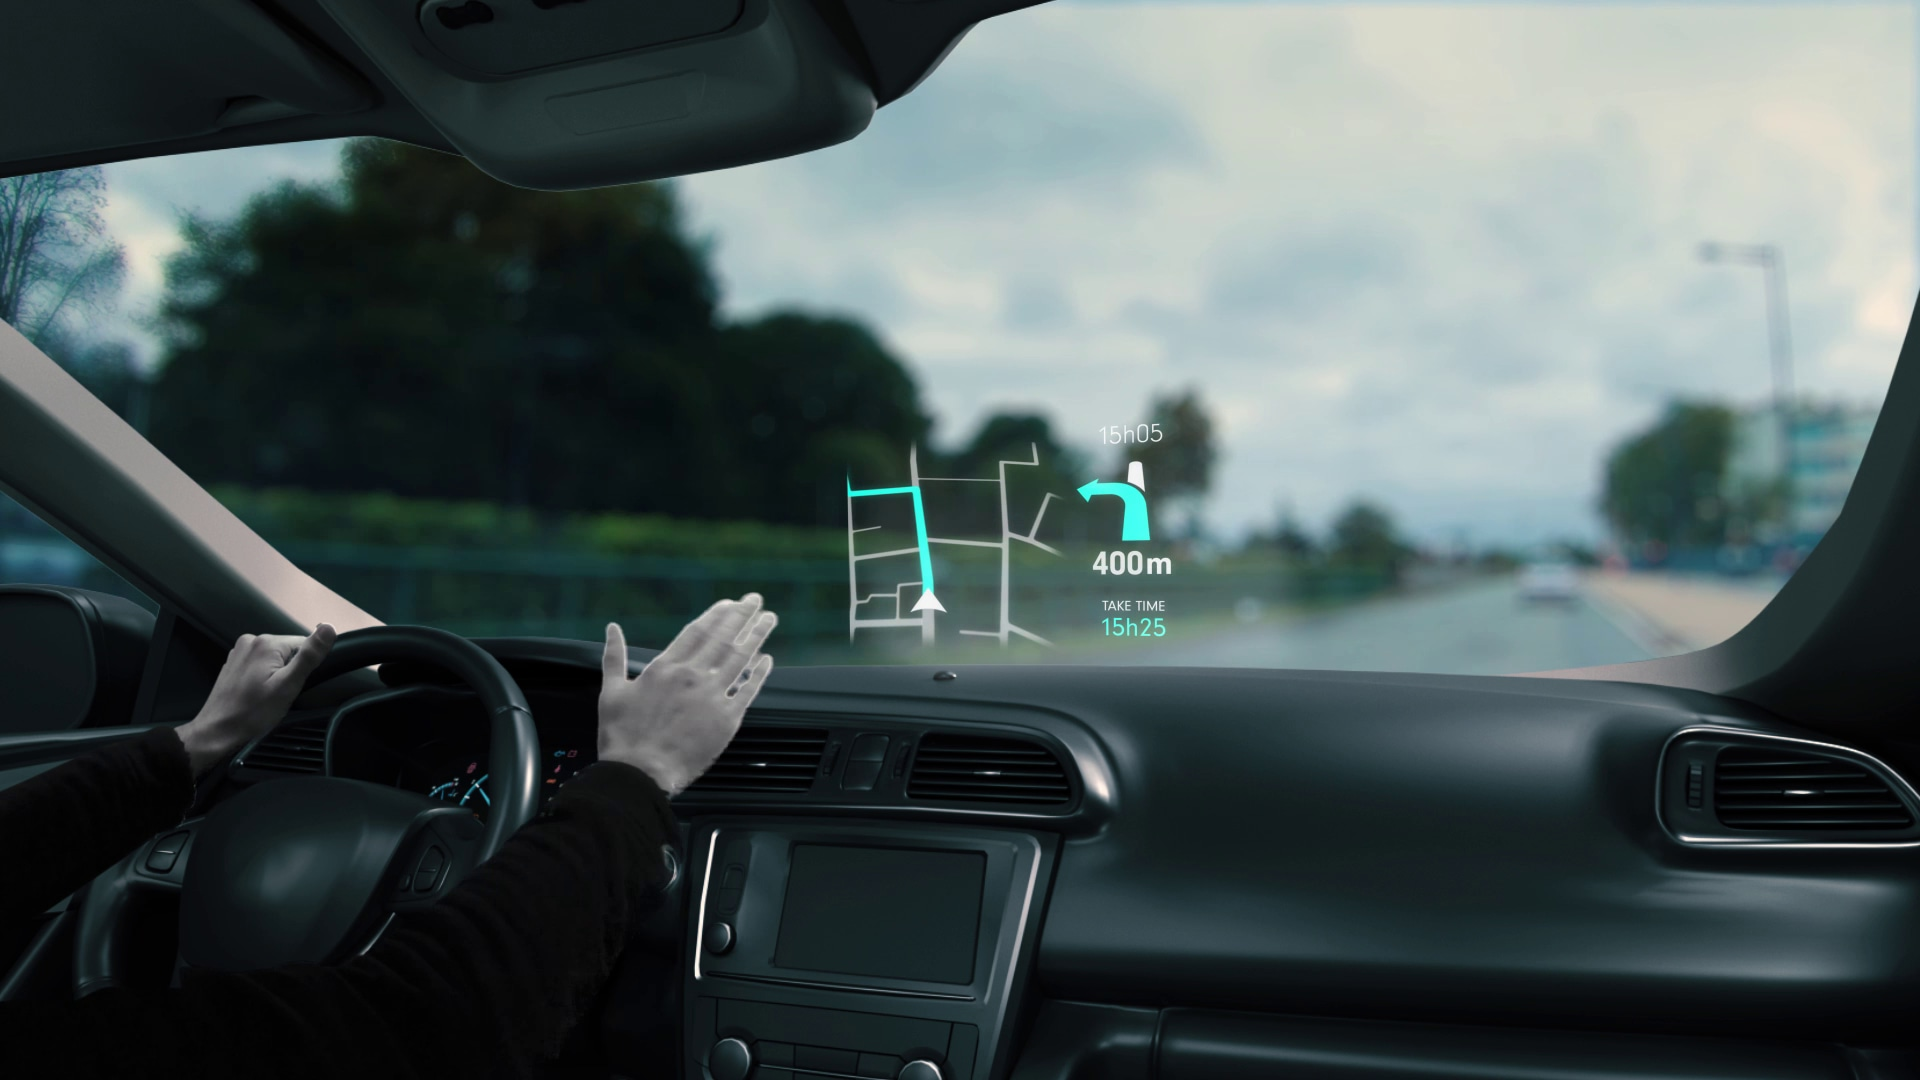 Using your phone while driving multiplies your chances of having an accident by 23. Our gesture control system allows you to interact with your apps and at the same time to keep your eyes on the road.